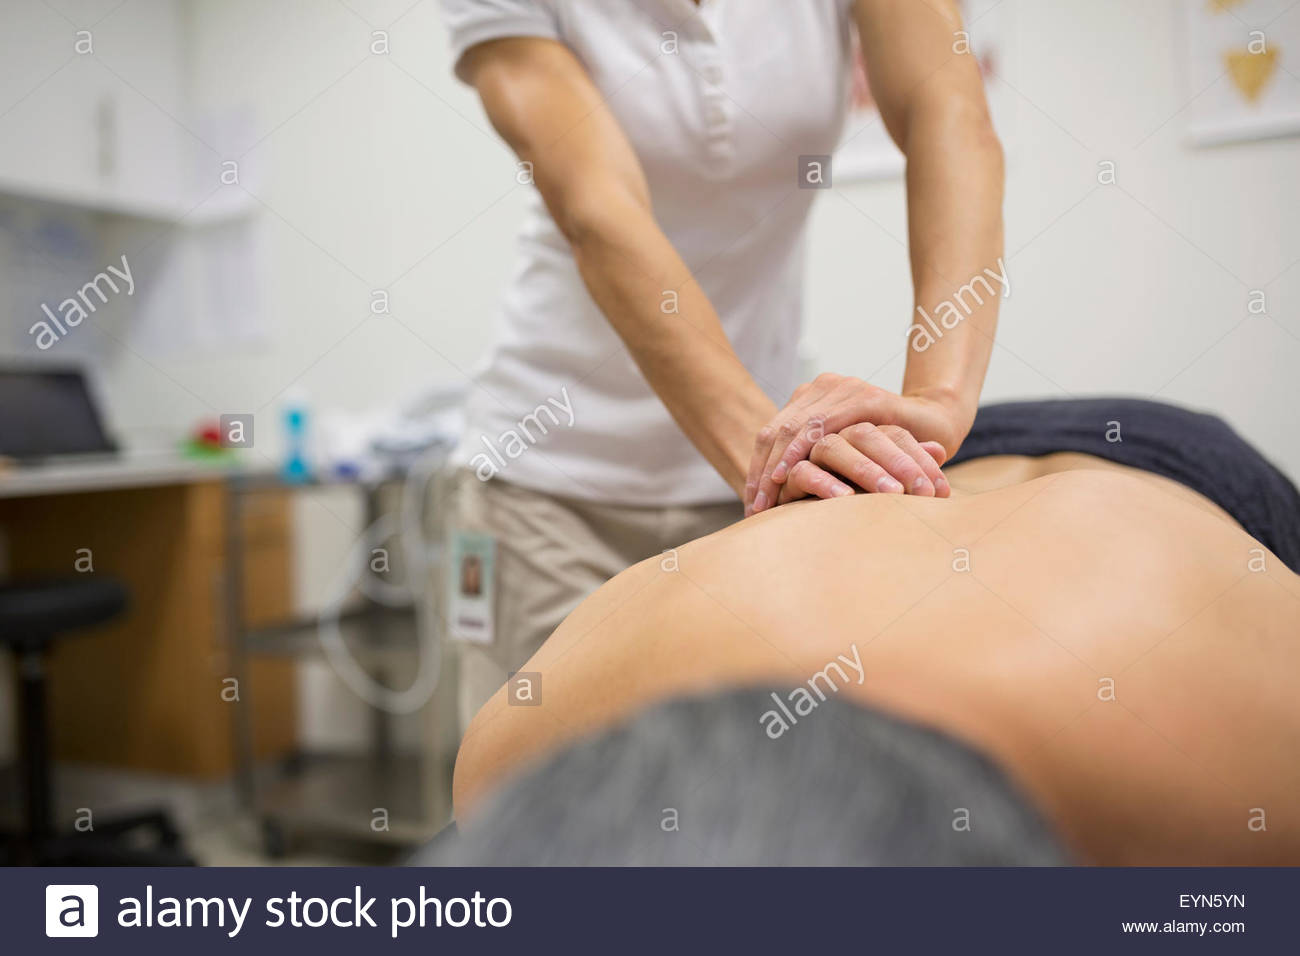 Physical therapist massaging patient back - Stock Image